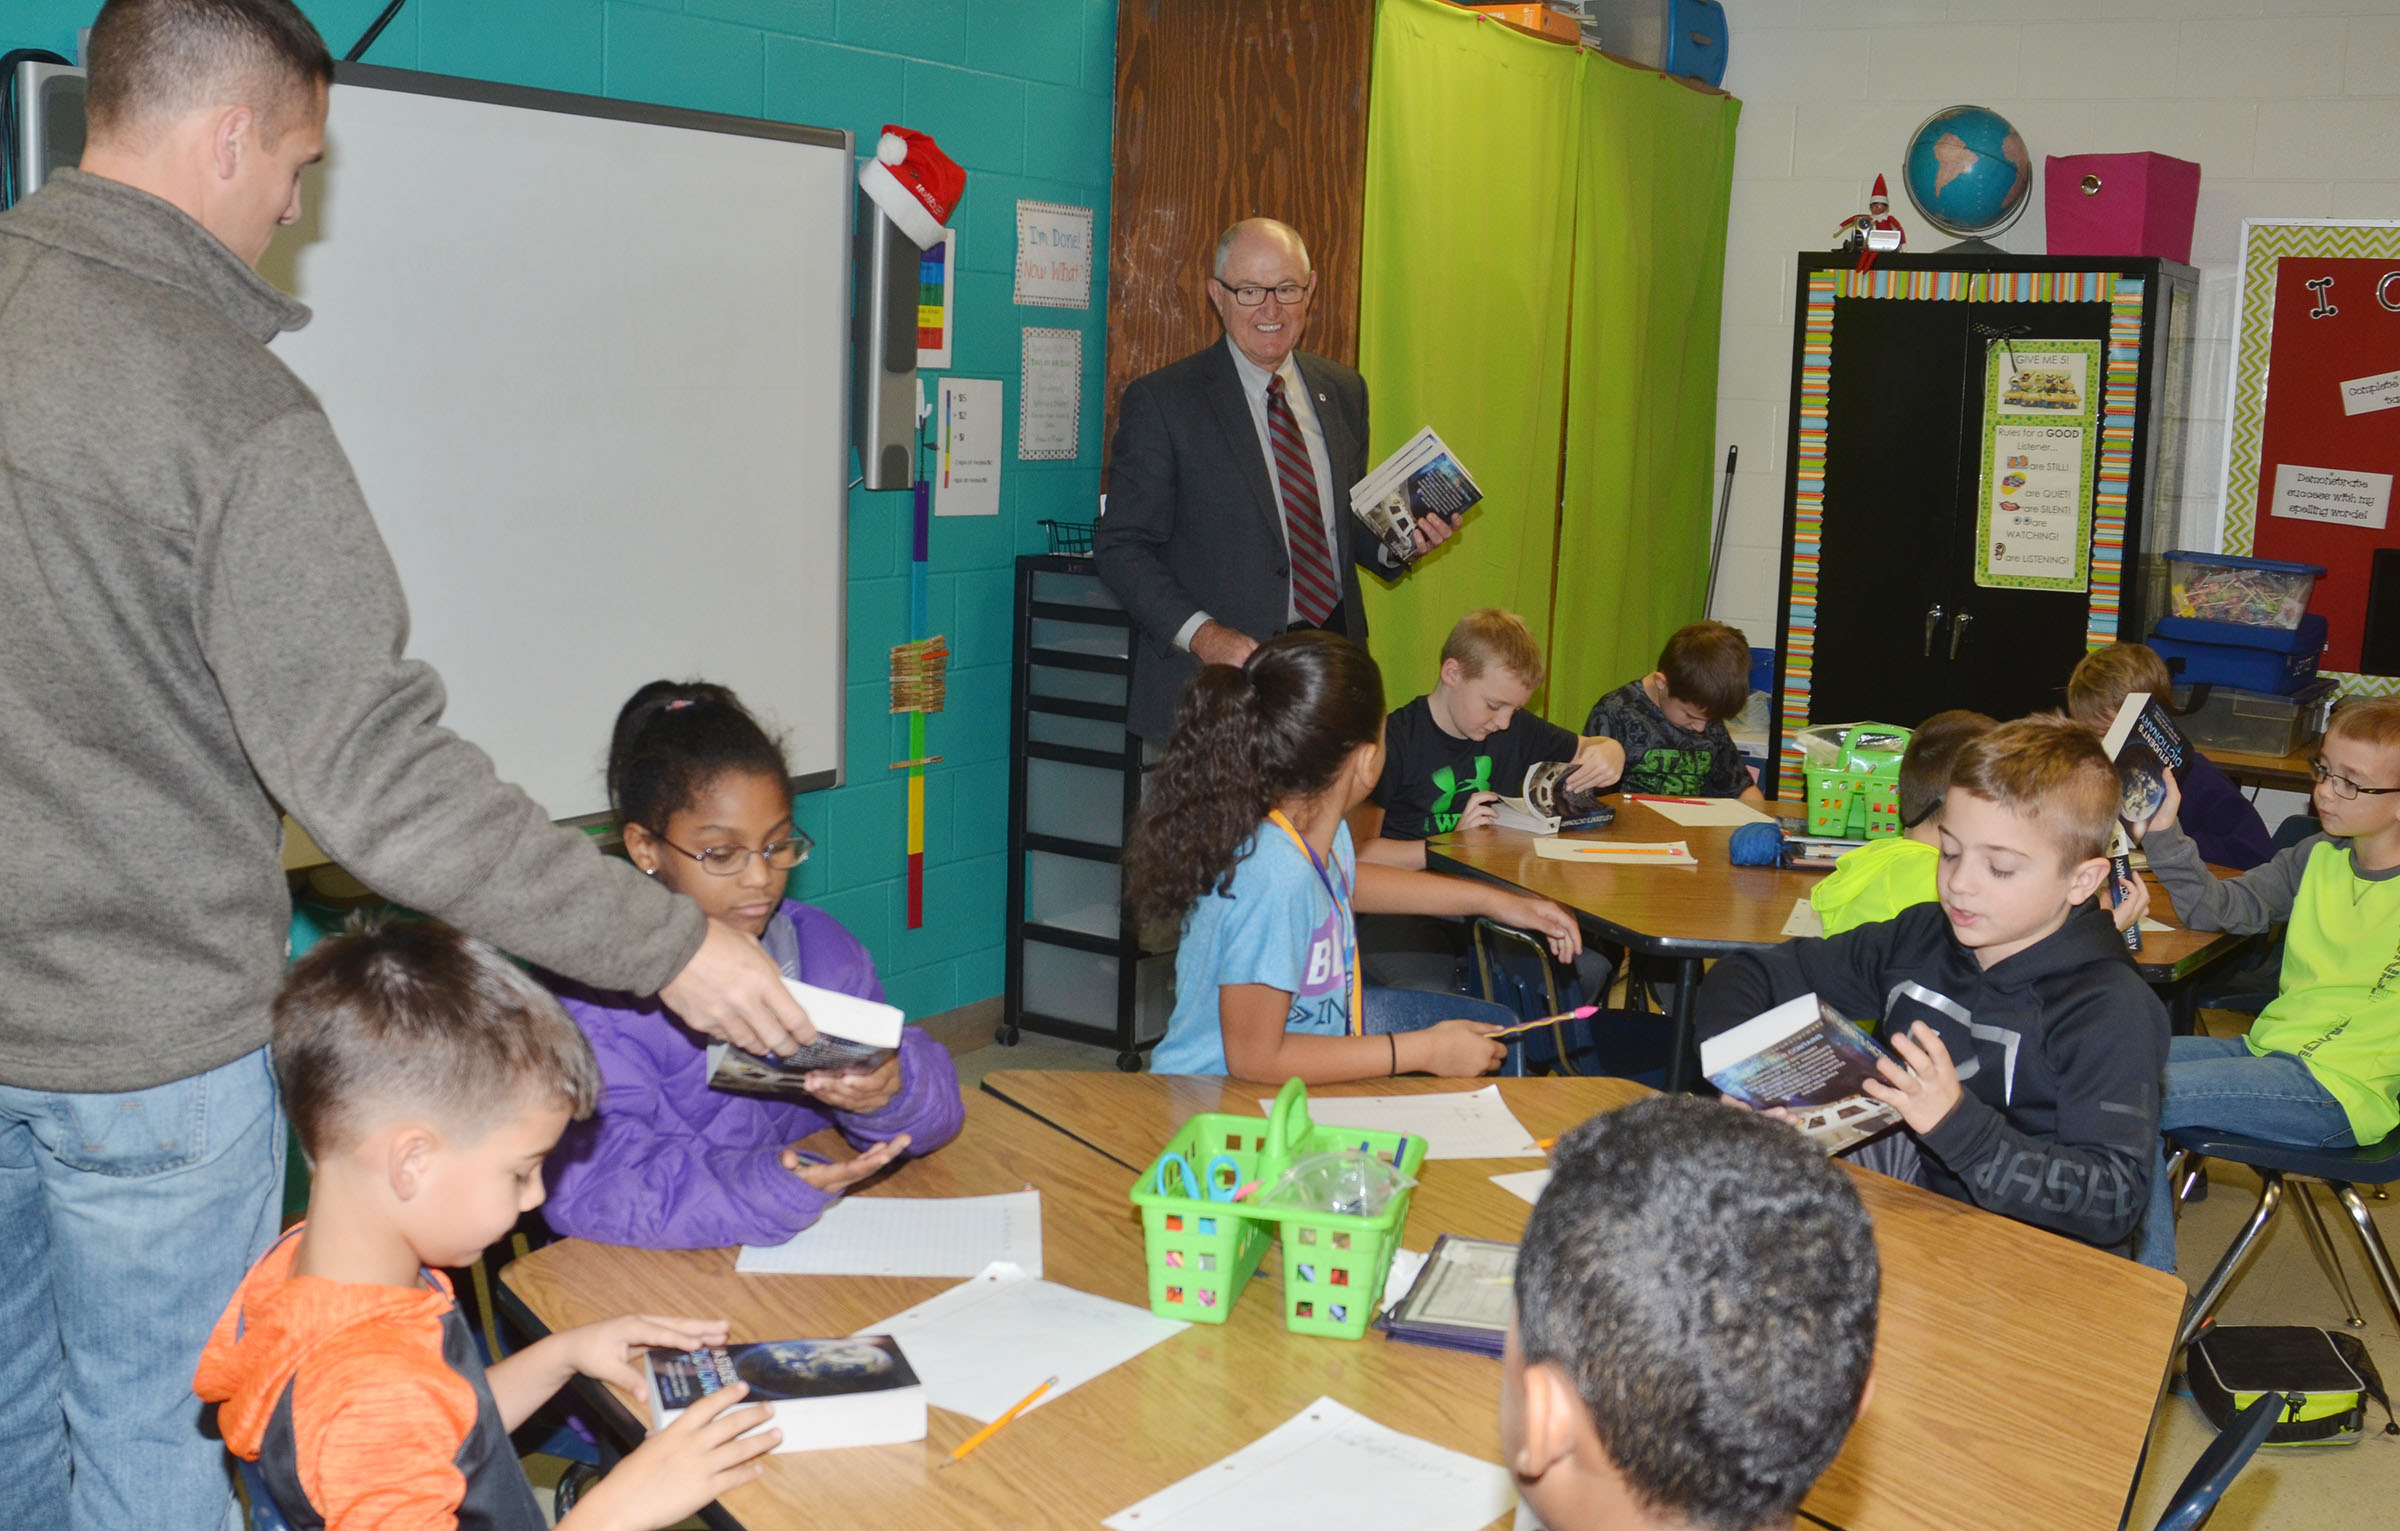 Campbellsville Rotary Club members Clark Howard, at left, and Chuck Vaughn pass out dictionaries to CES third-grade students.